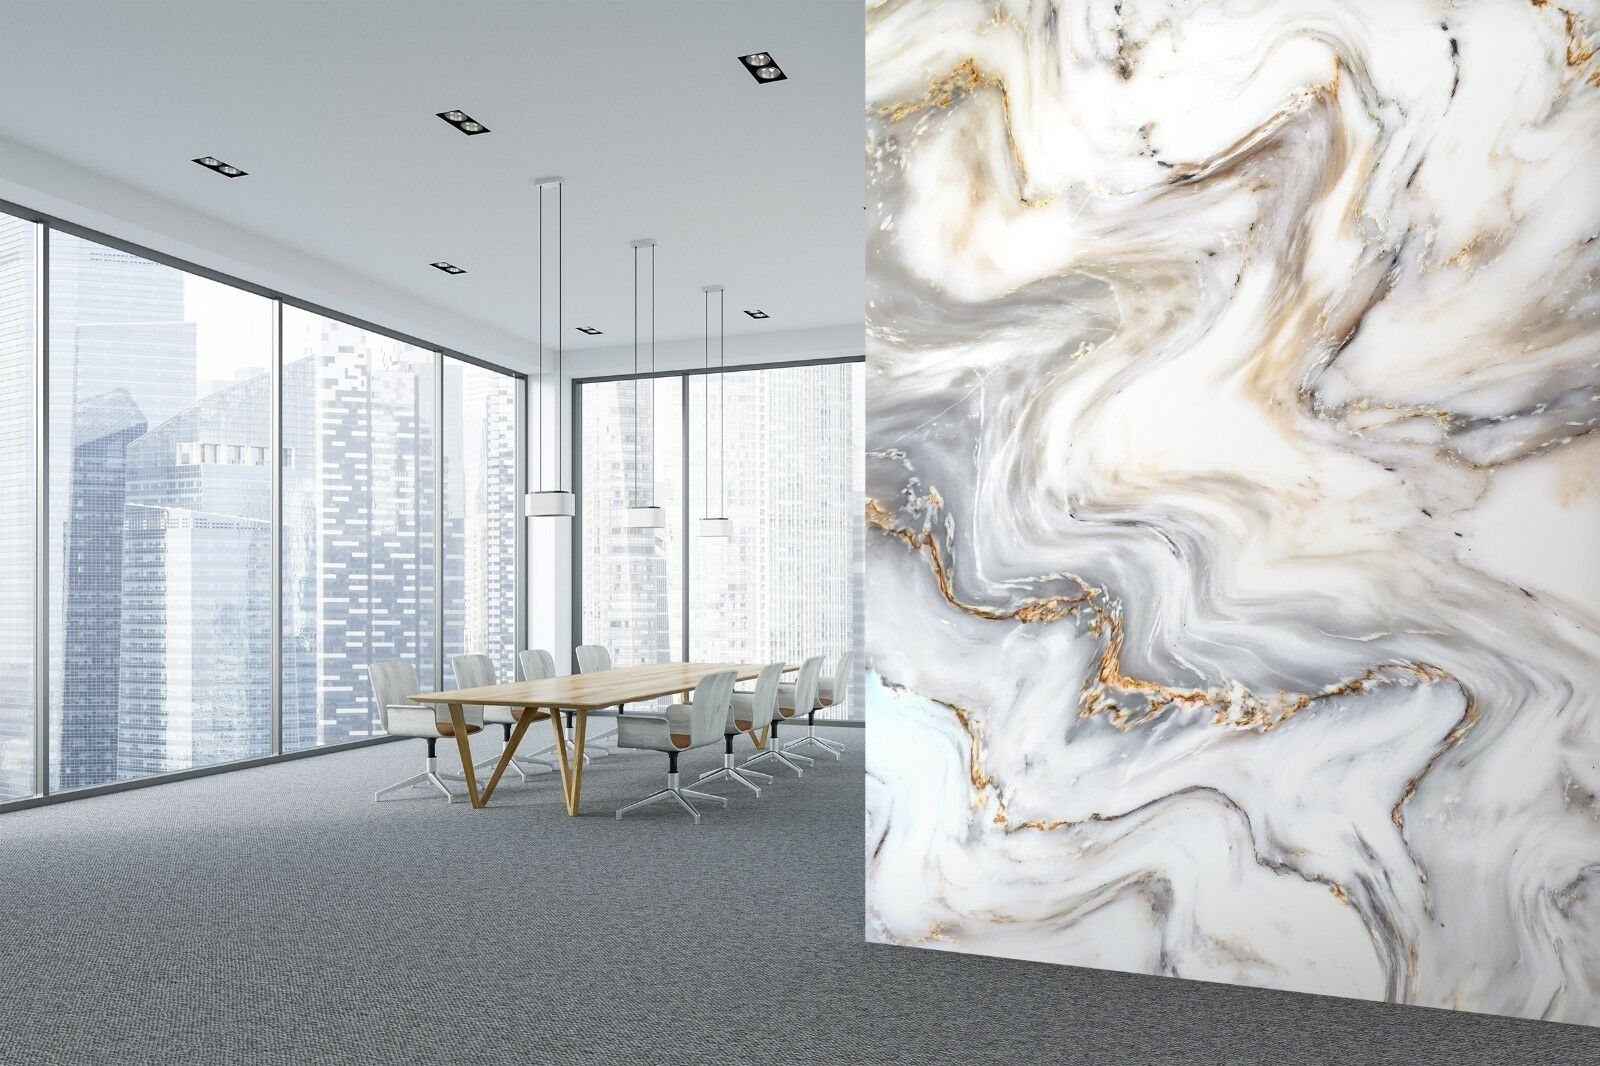 3D Fashion Water Ink 2 Texture Tiles Marble Wall Paper Decal Wallpaper Mural AJ